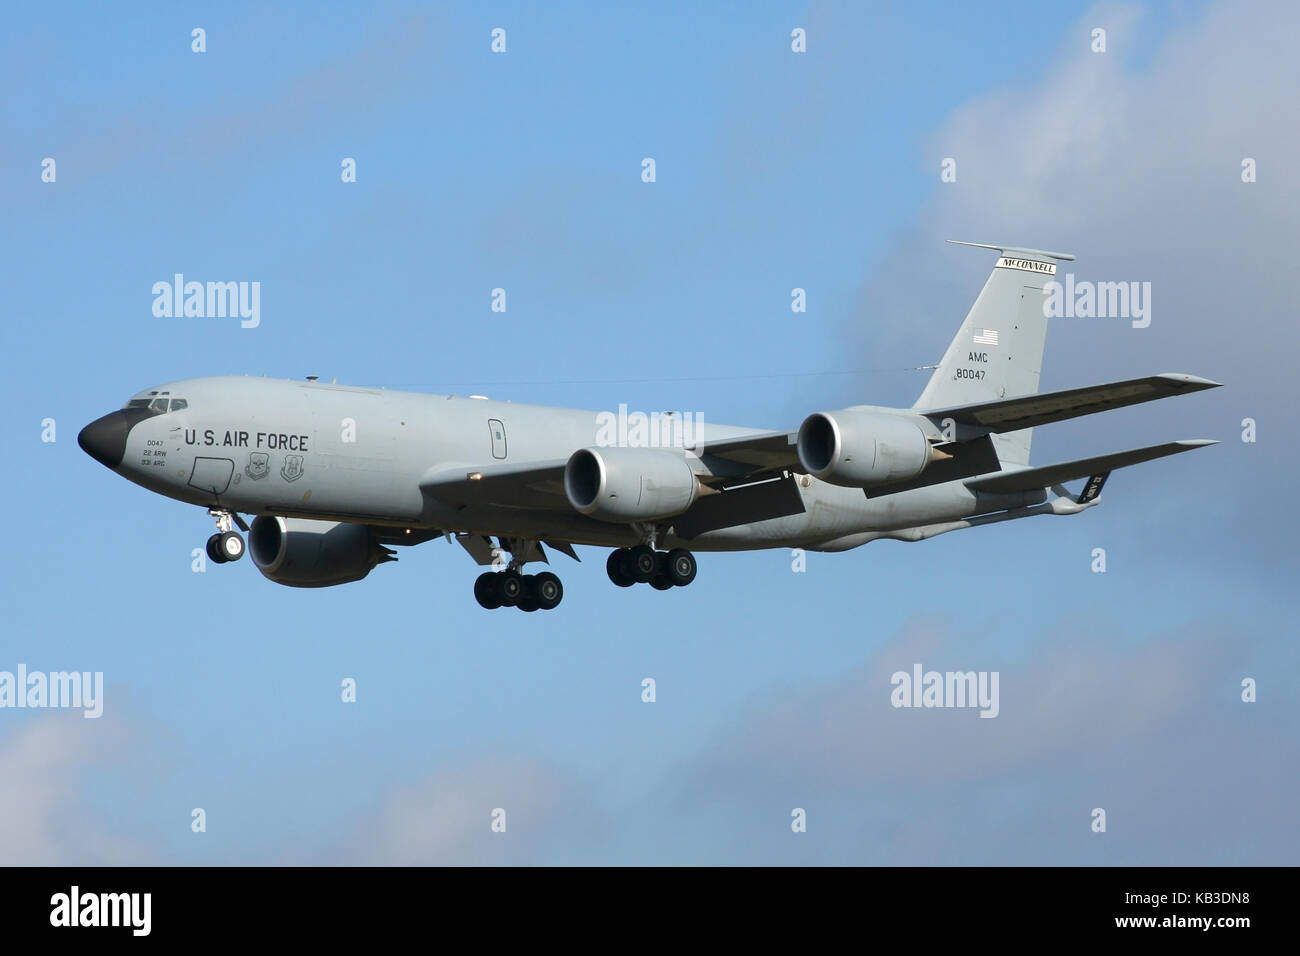 Boeing KC-135R Stratotankers from the 22nd Air Refuelling Wing at McConnell AFB are frequent visitors to RAF Mildenhall. - Stock Image